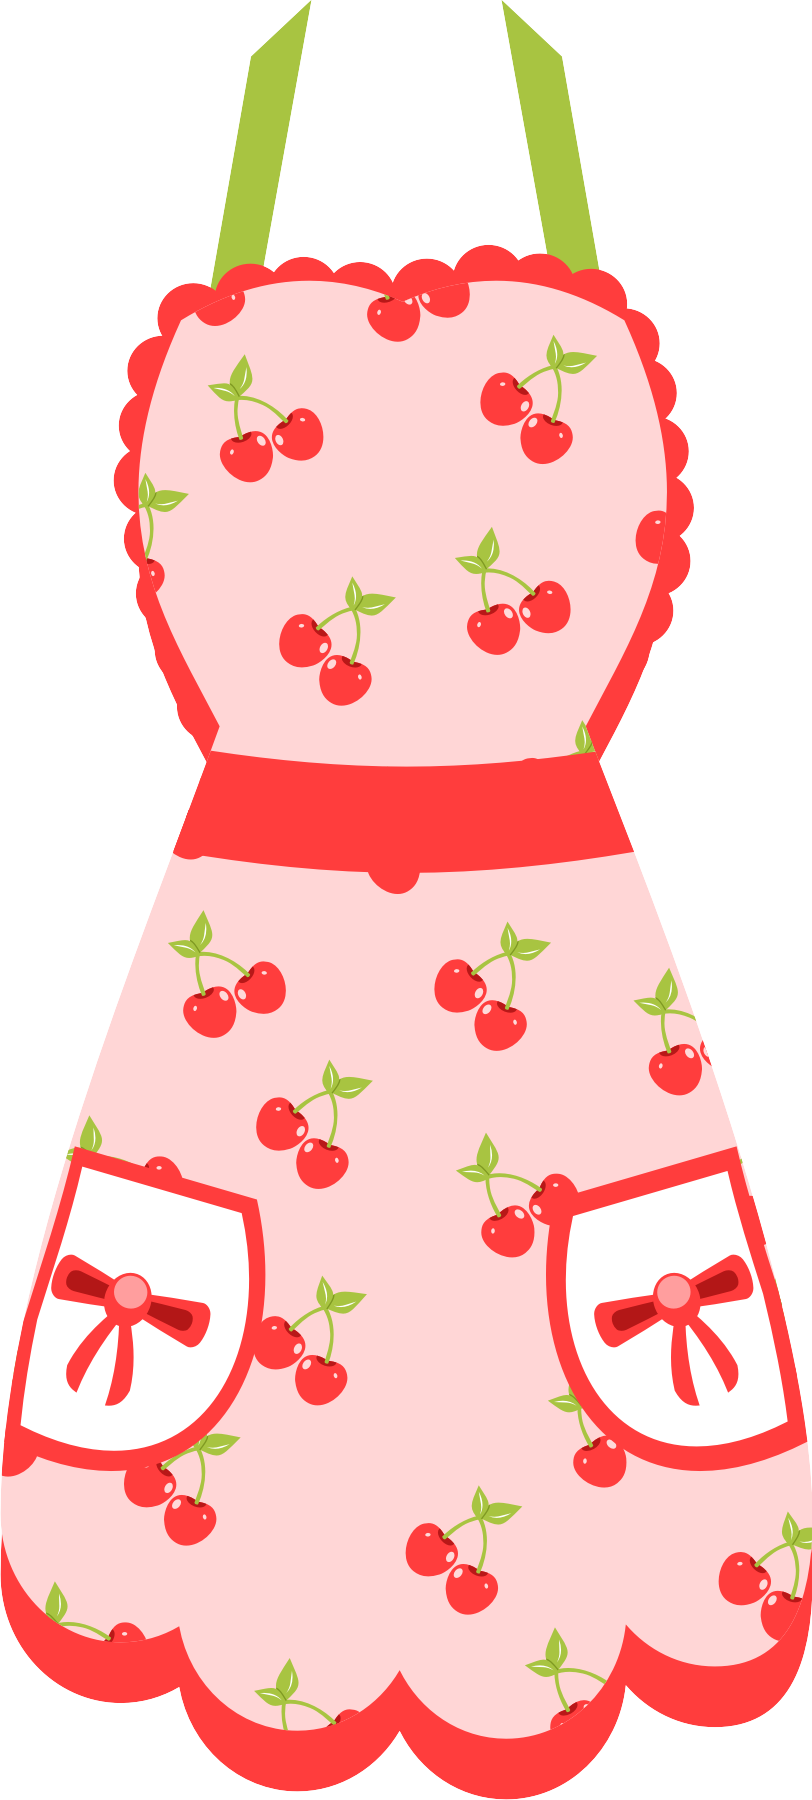 Apron clipart border. Photo by danimfalcao minus